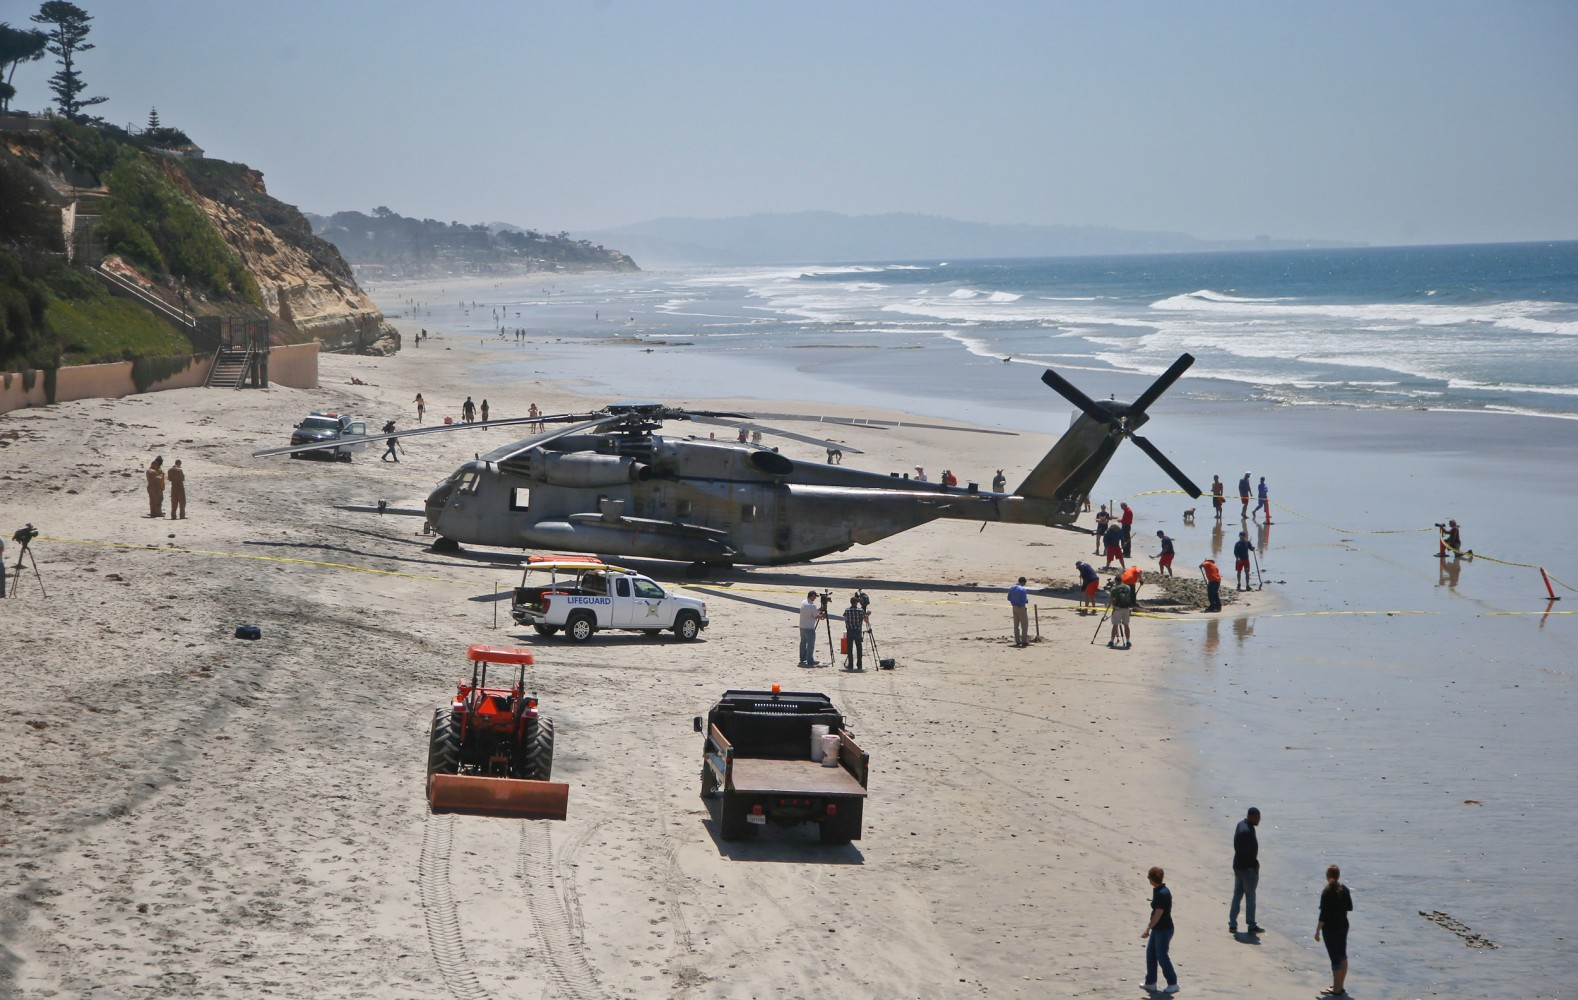 Staff sgt jonathan lewis marine killed in helicopter accident was